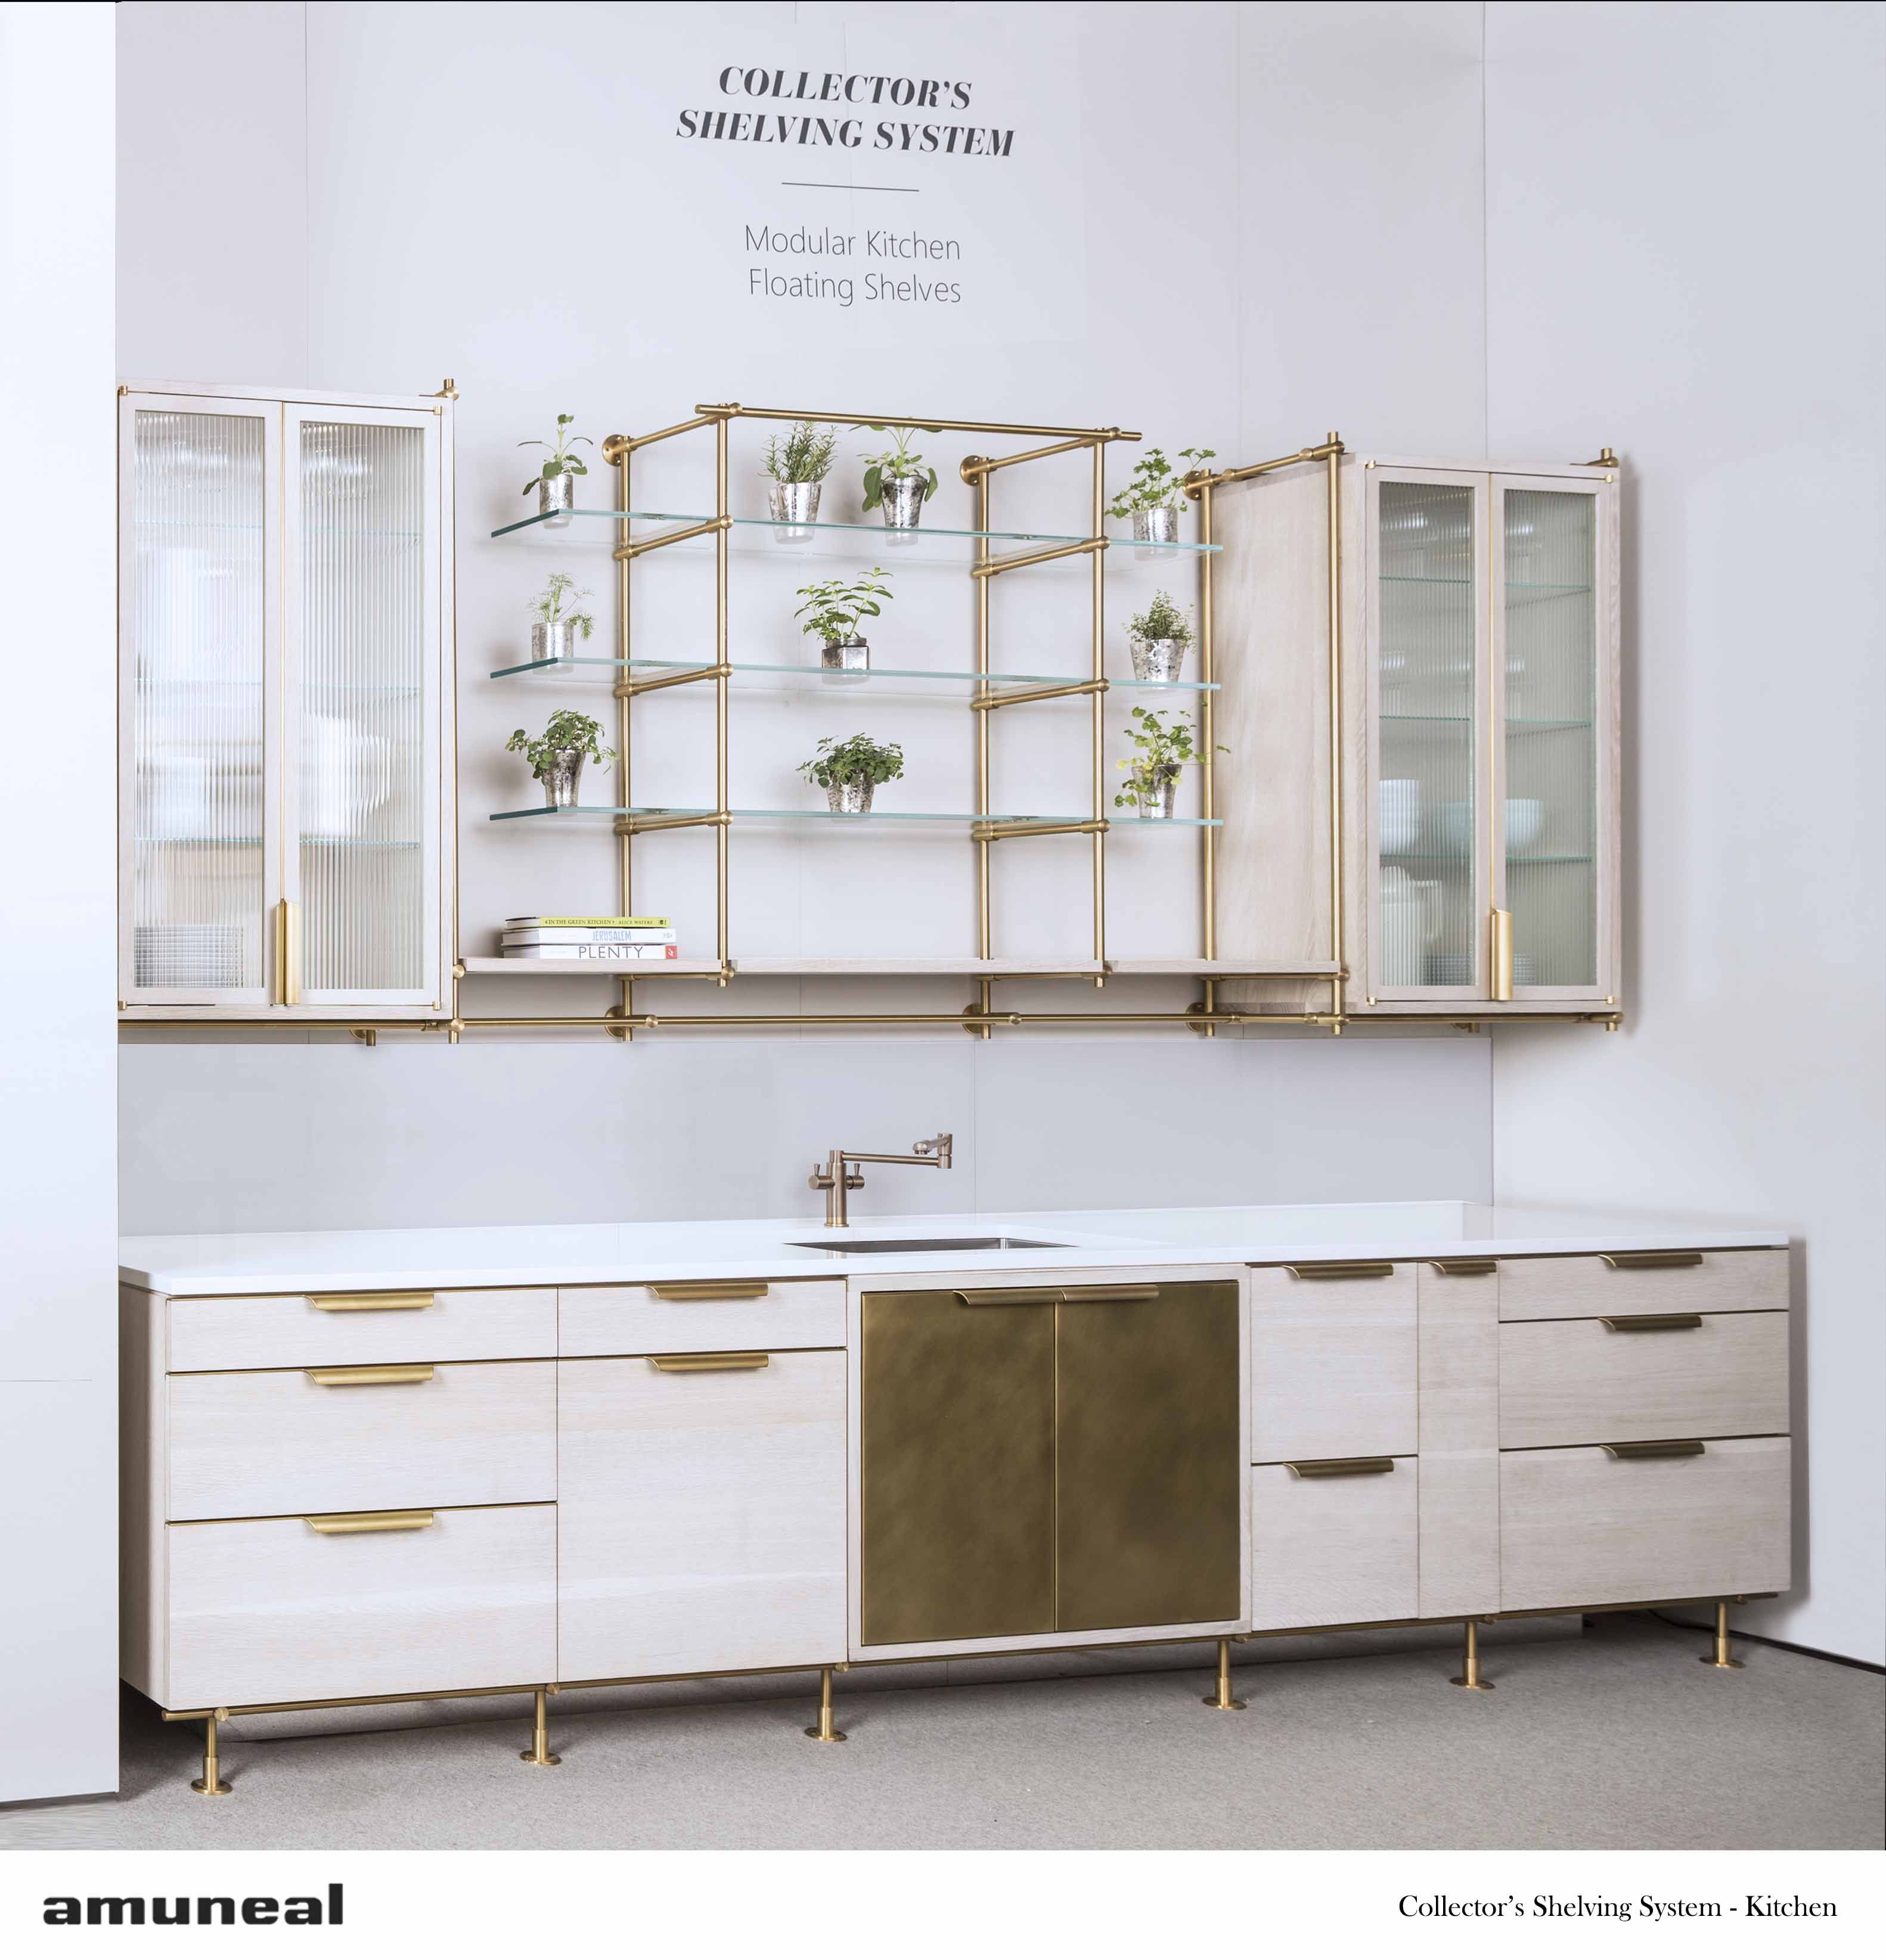 Collectors Shelving U2013 Kitchen Metal Finish: Warm Brass Wood Finish:  Bleached Oak Size As Shown: W X H X D Options Shown: Upper Cabinets With  Ribbed Glass ...